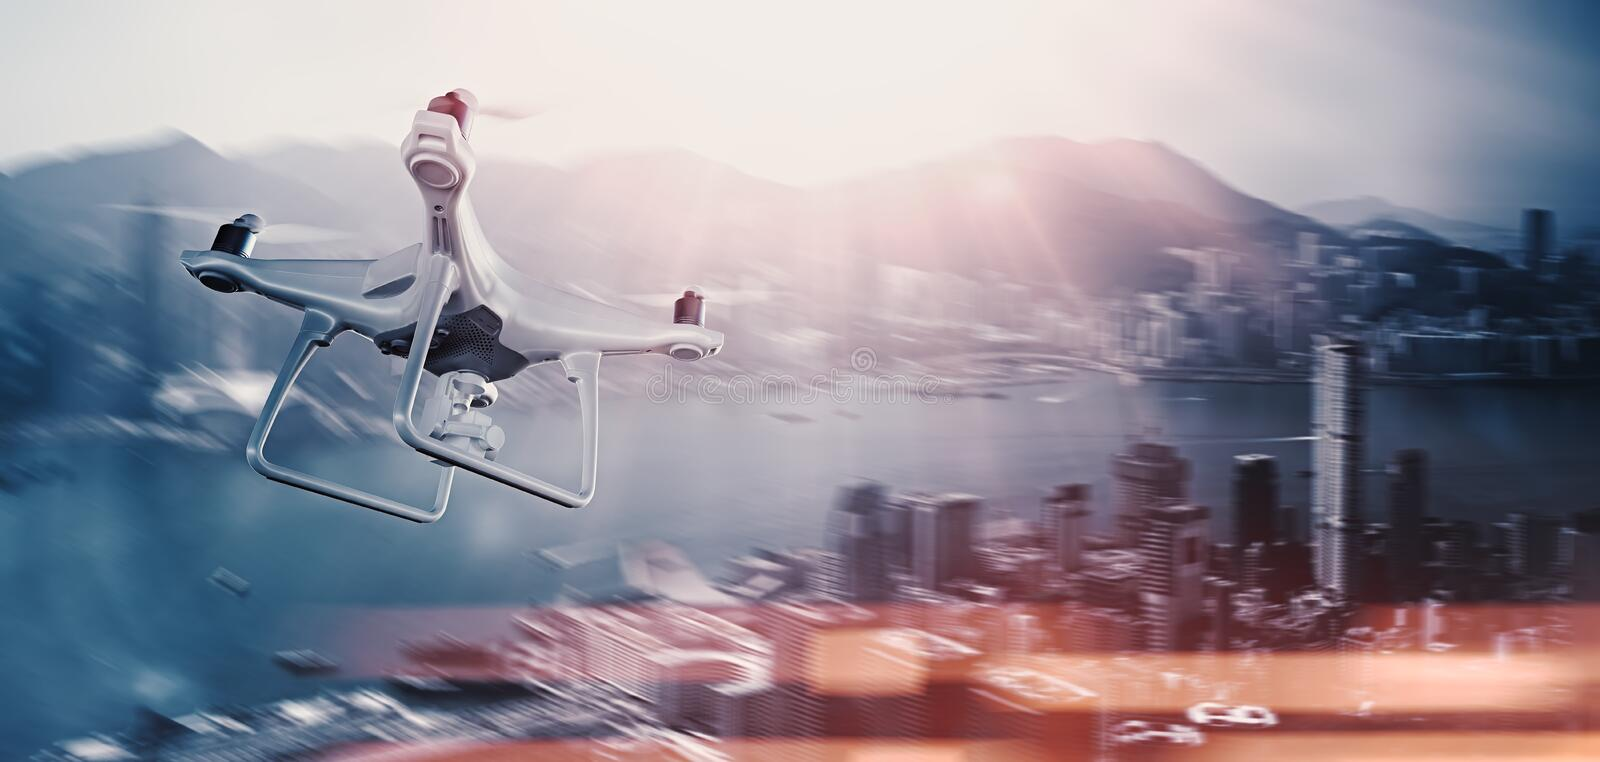 Photo White Matte Generic Design Remote Control Air Drone with action camera Flying Sky under City. Modern Megapolis stock illustration